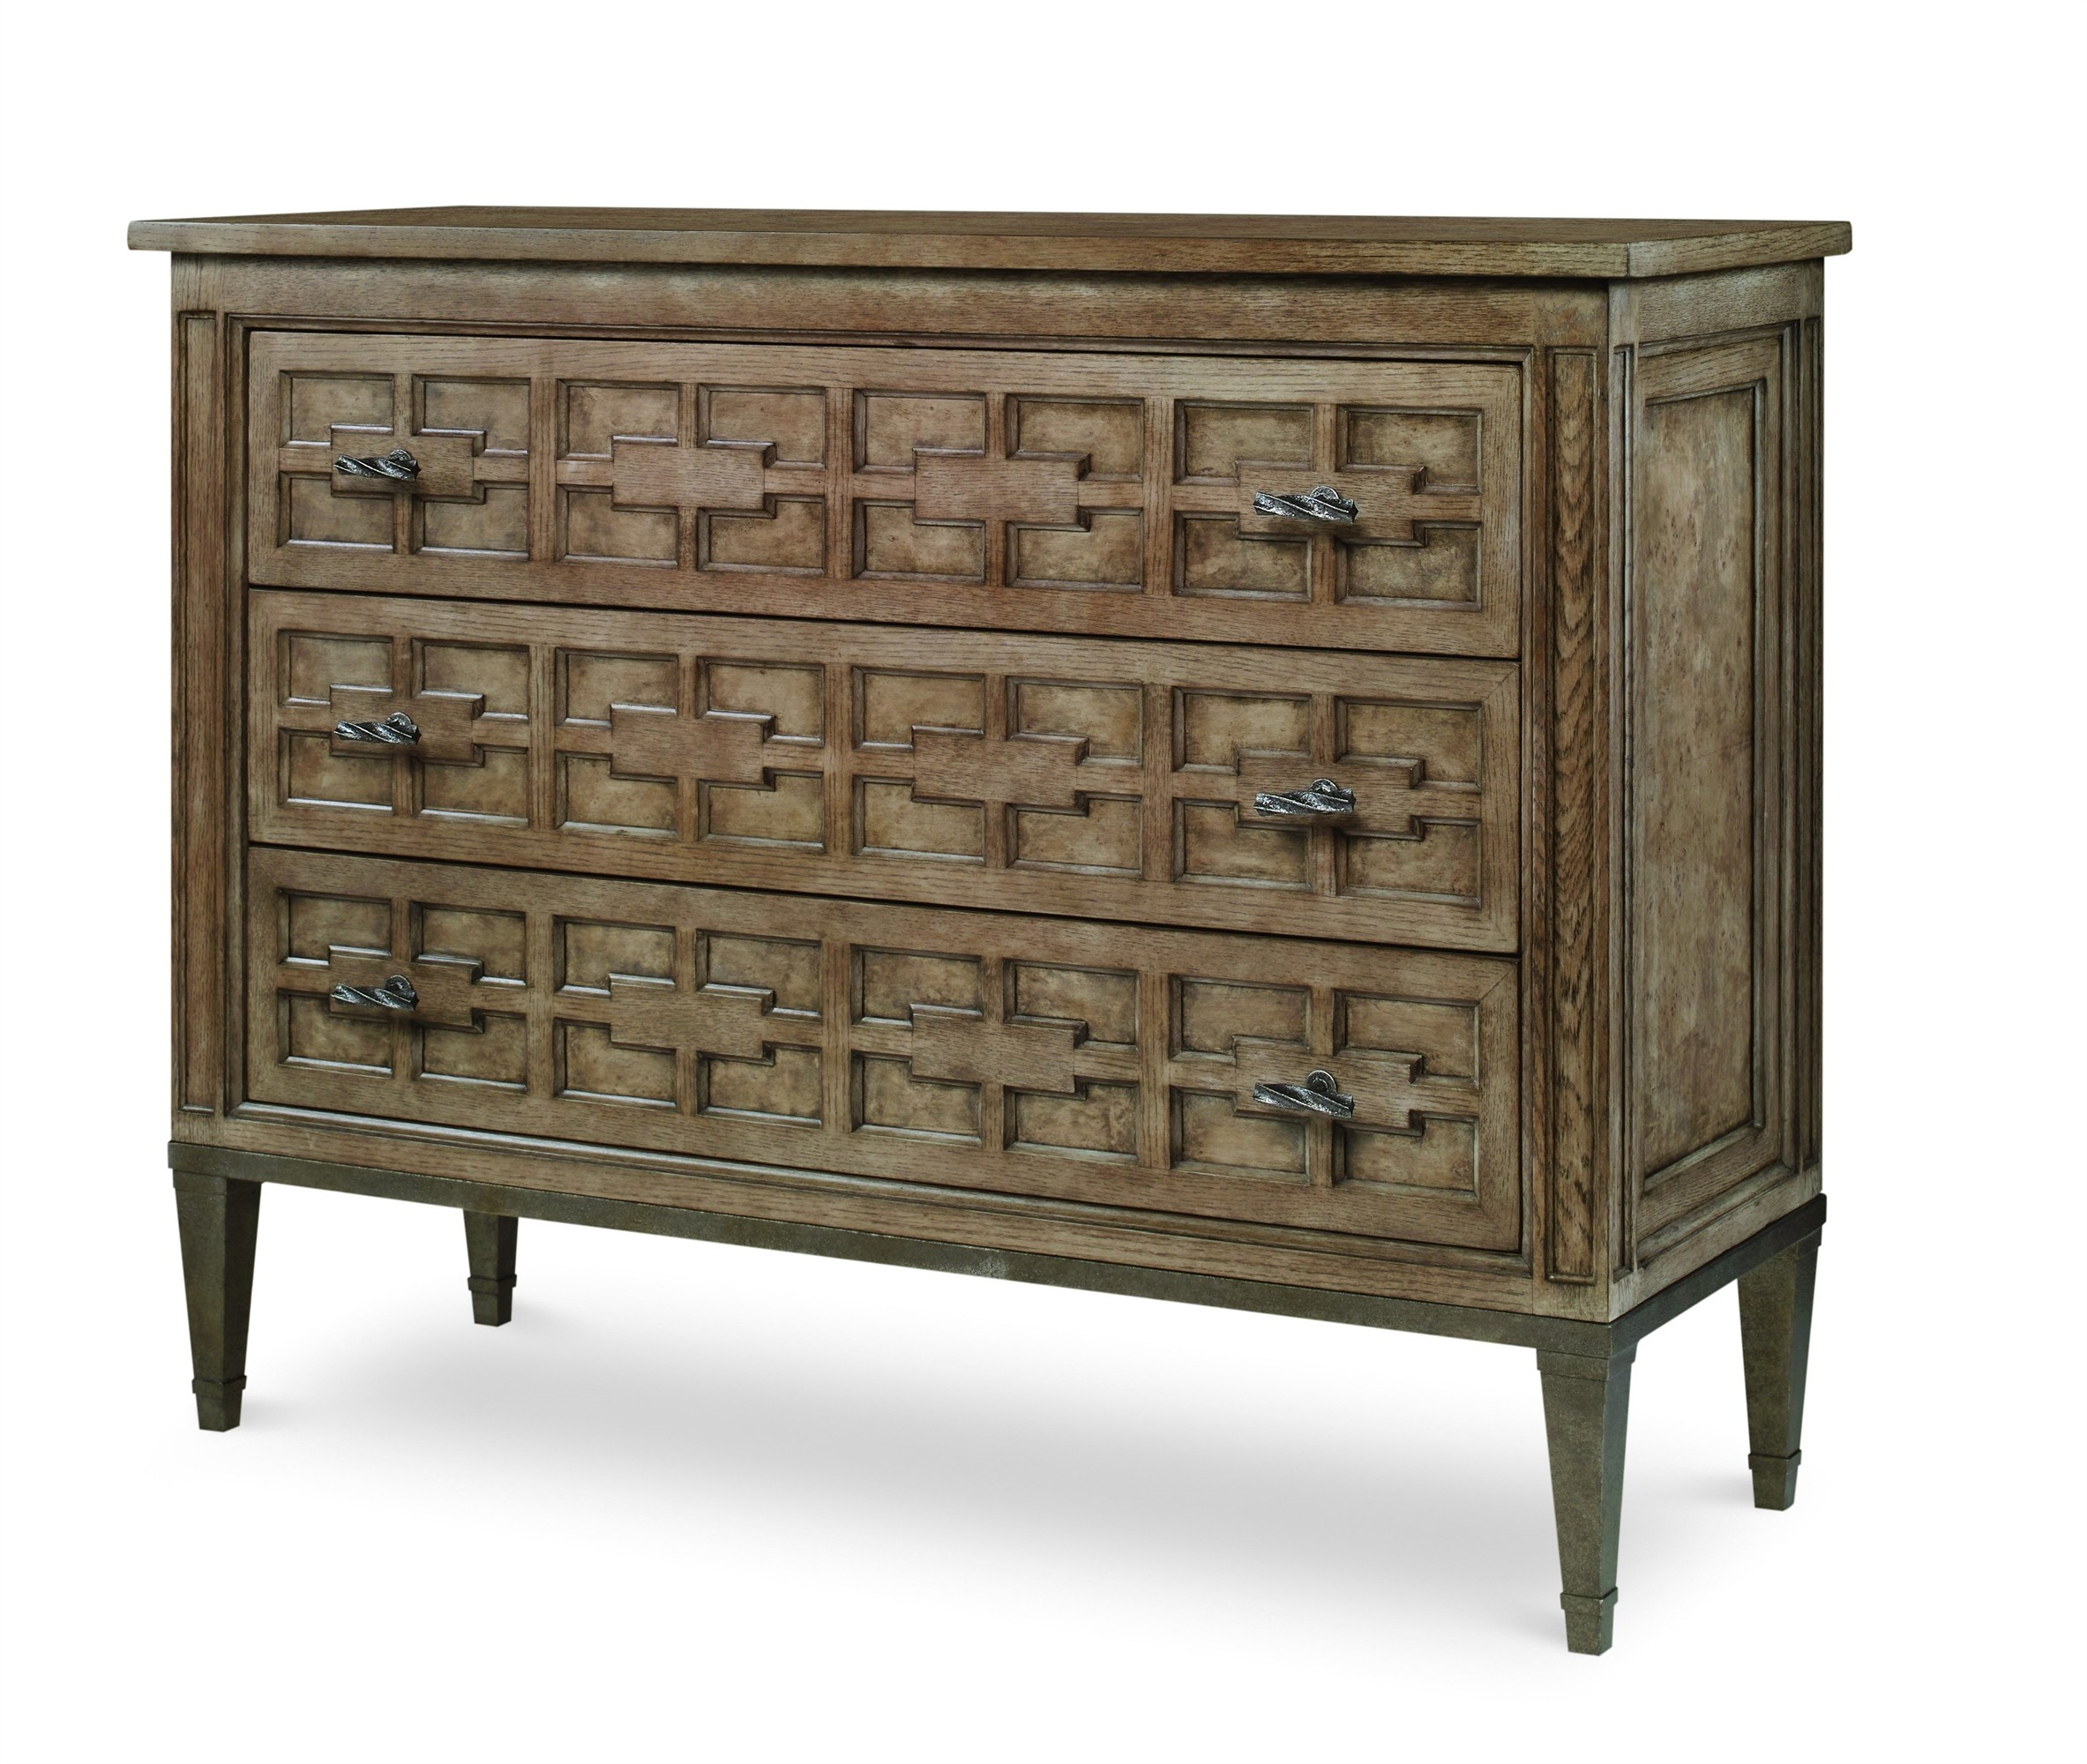 Casa Bella Burl Drawer Chest - Timber Gray Finish